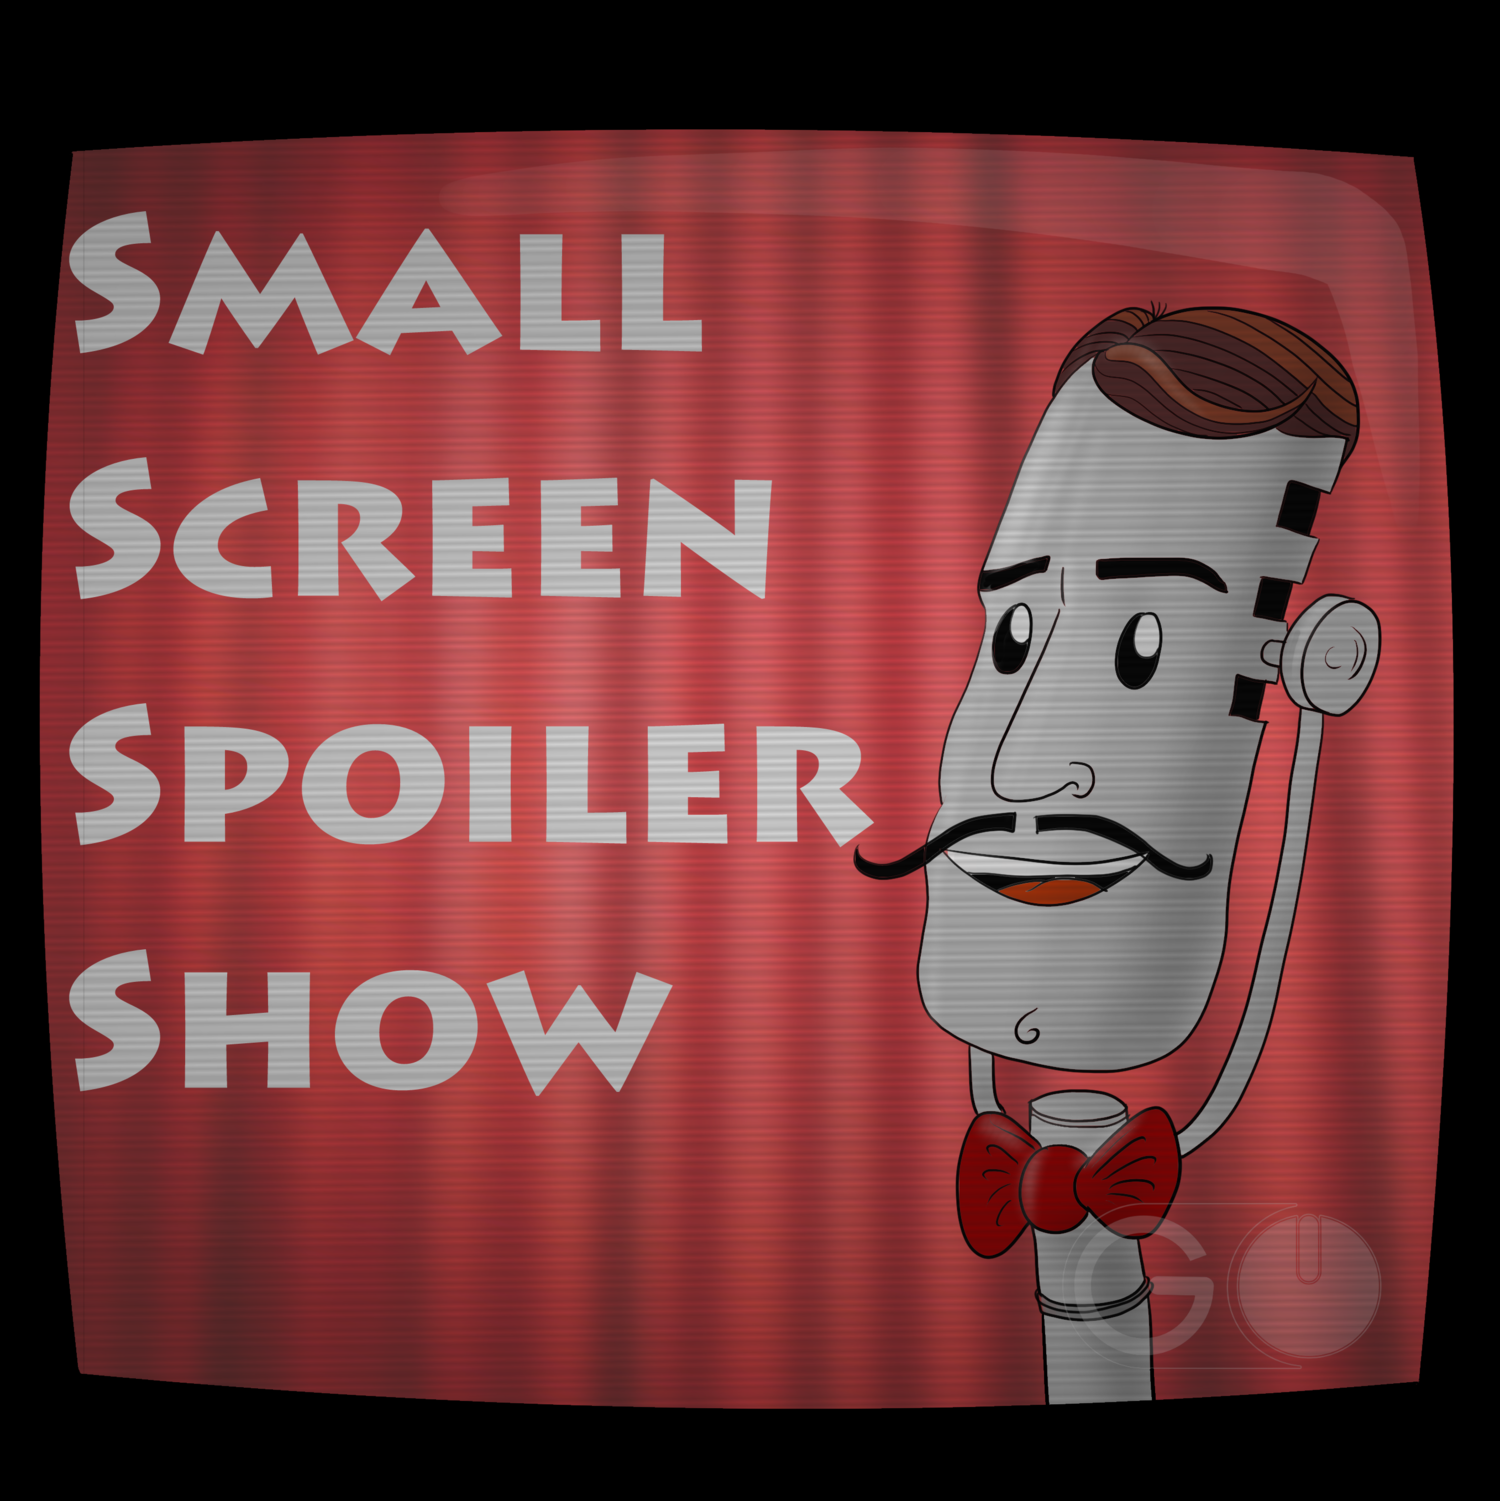 Small Screen Spoiler Show - The Geek I/O Network